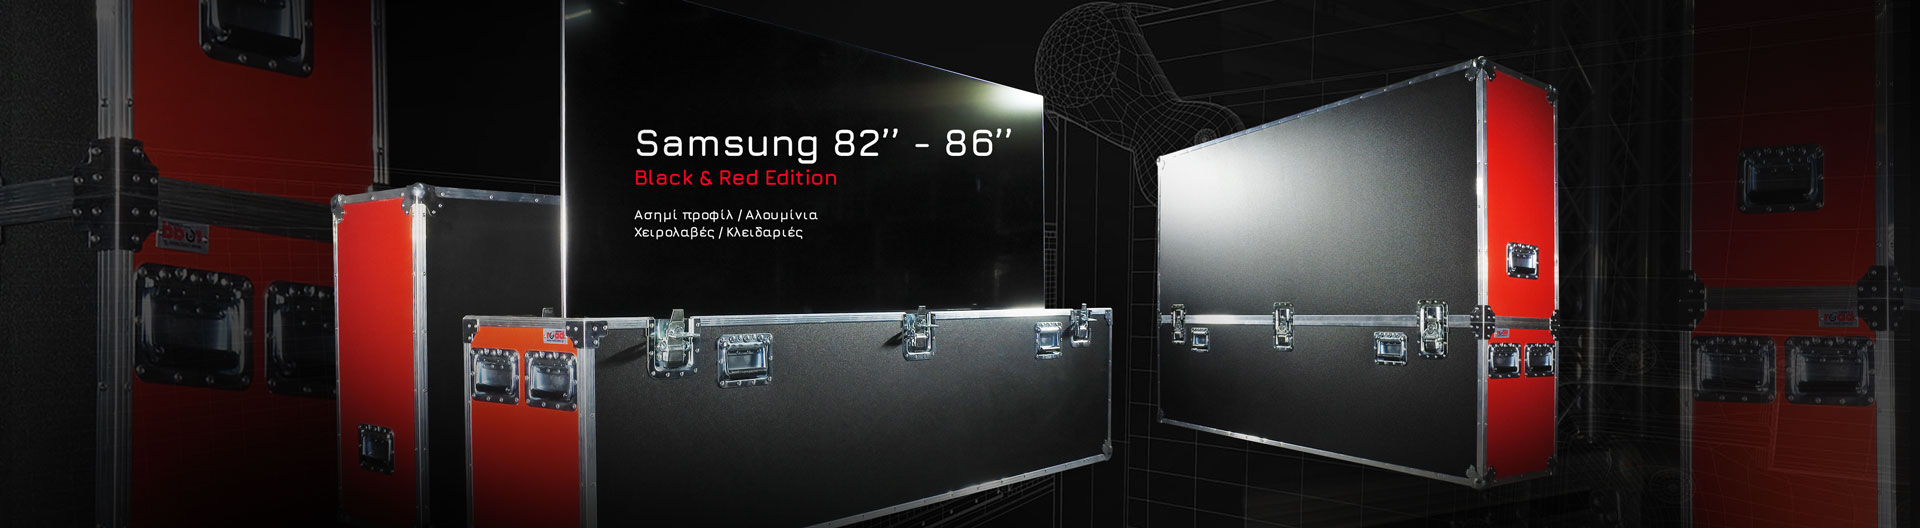 Samsung-82-86_inches